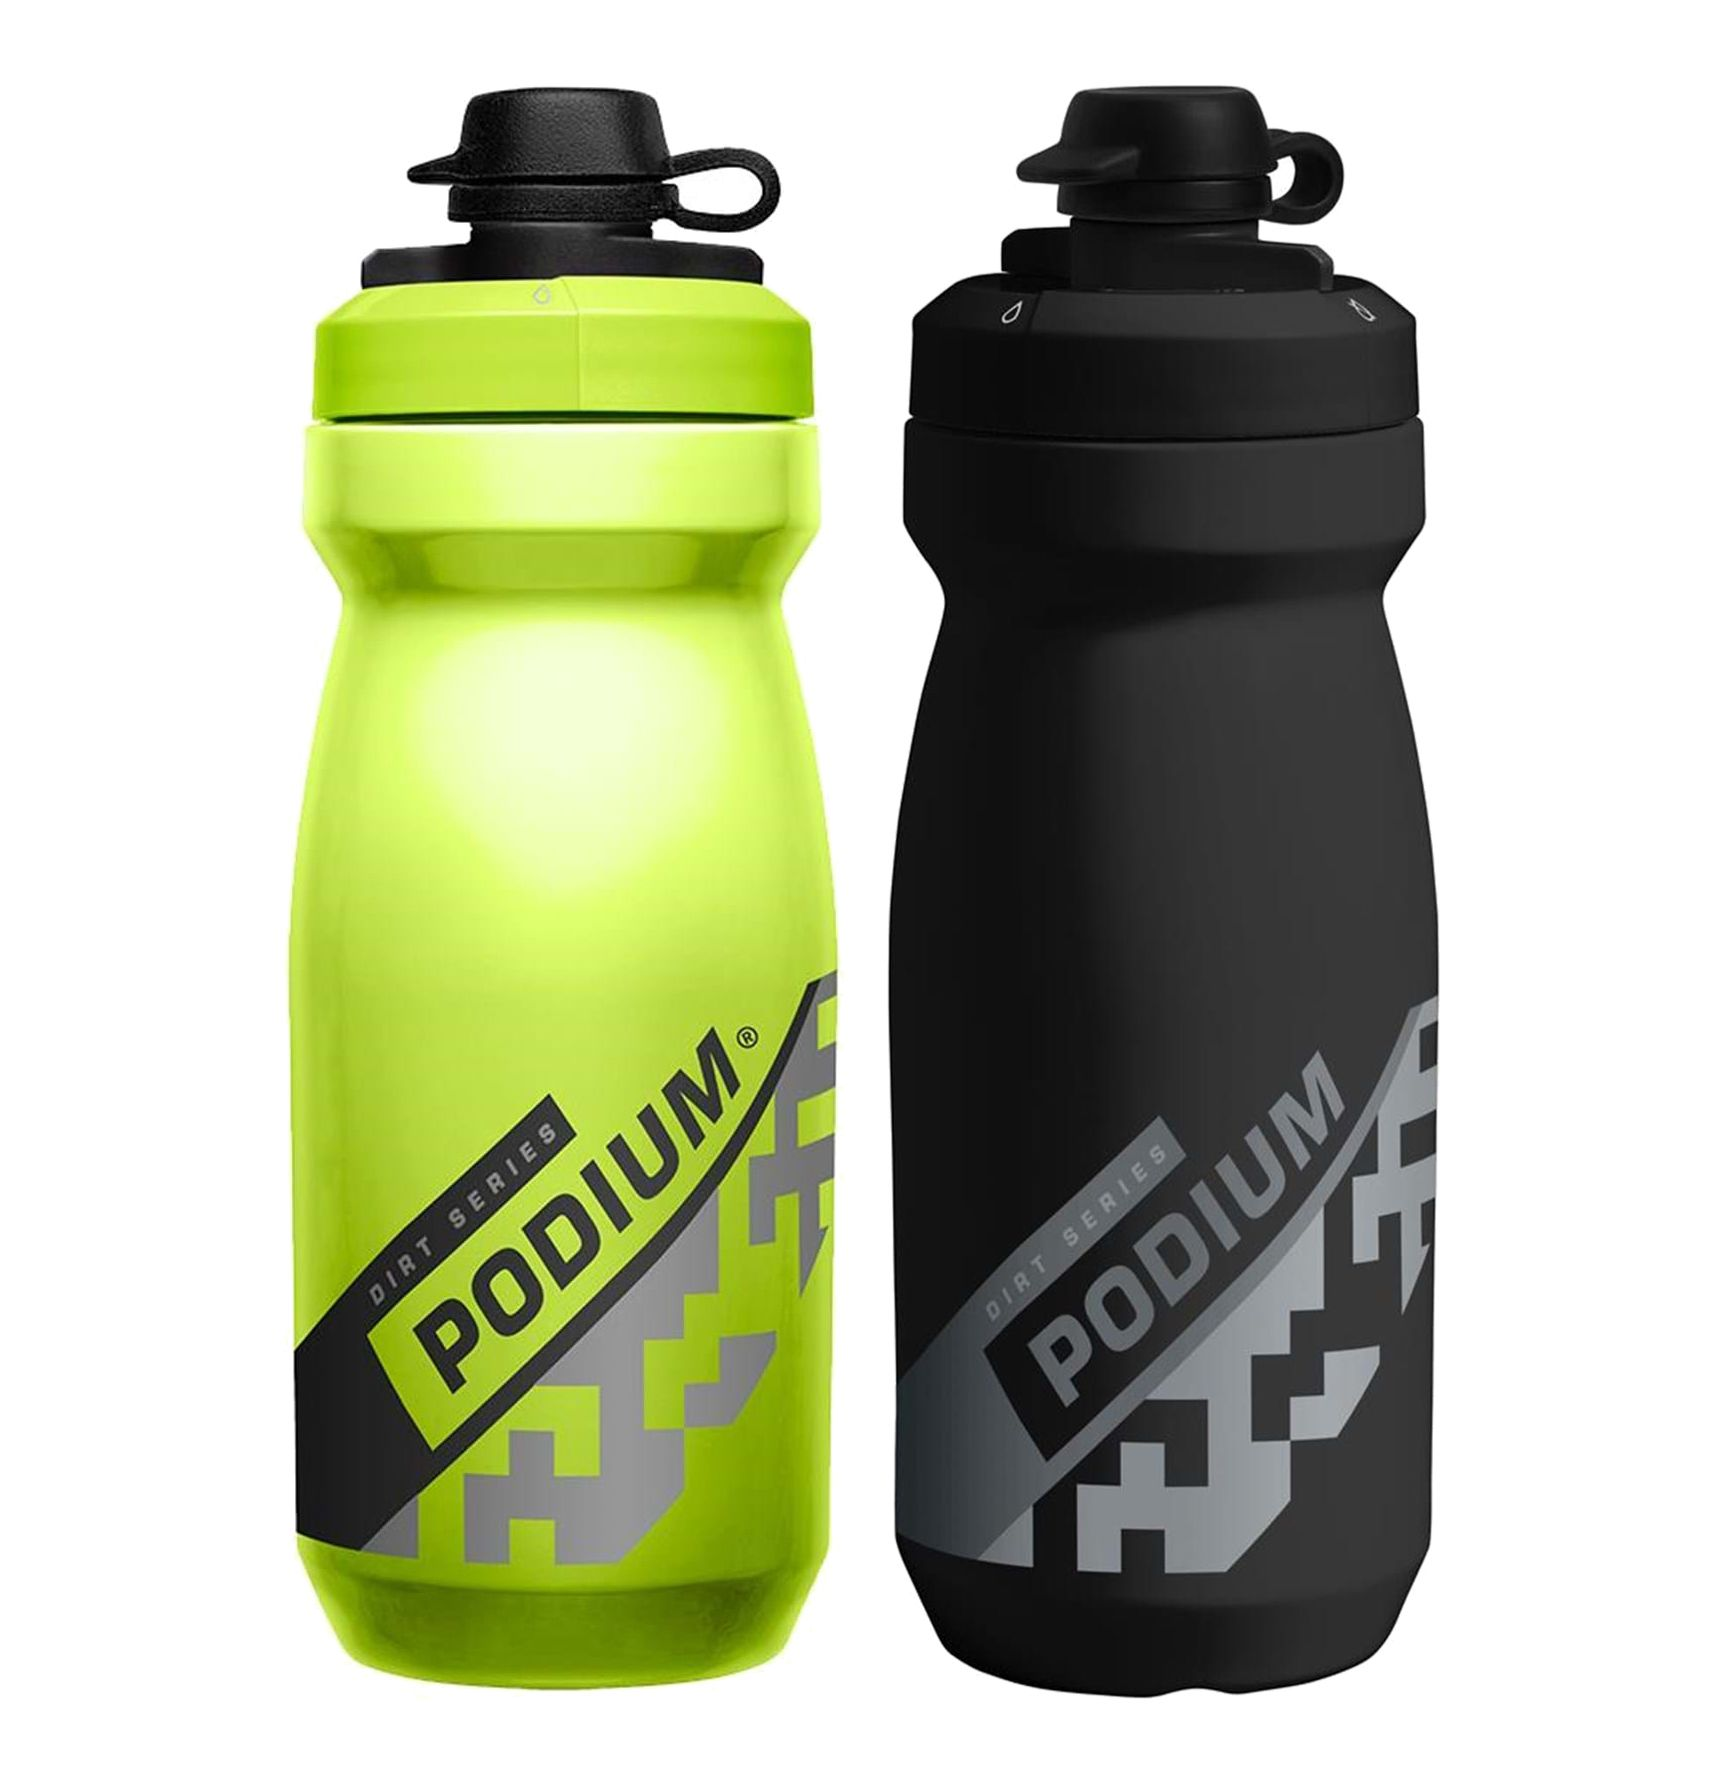 Camelbak Podium Dirt Series Bottle 21oz 620ml | Drikkedunke